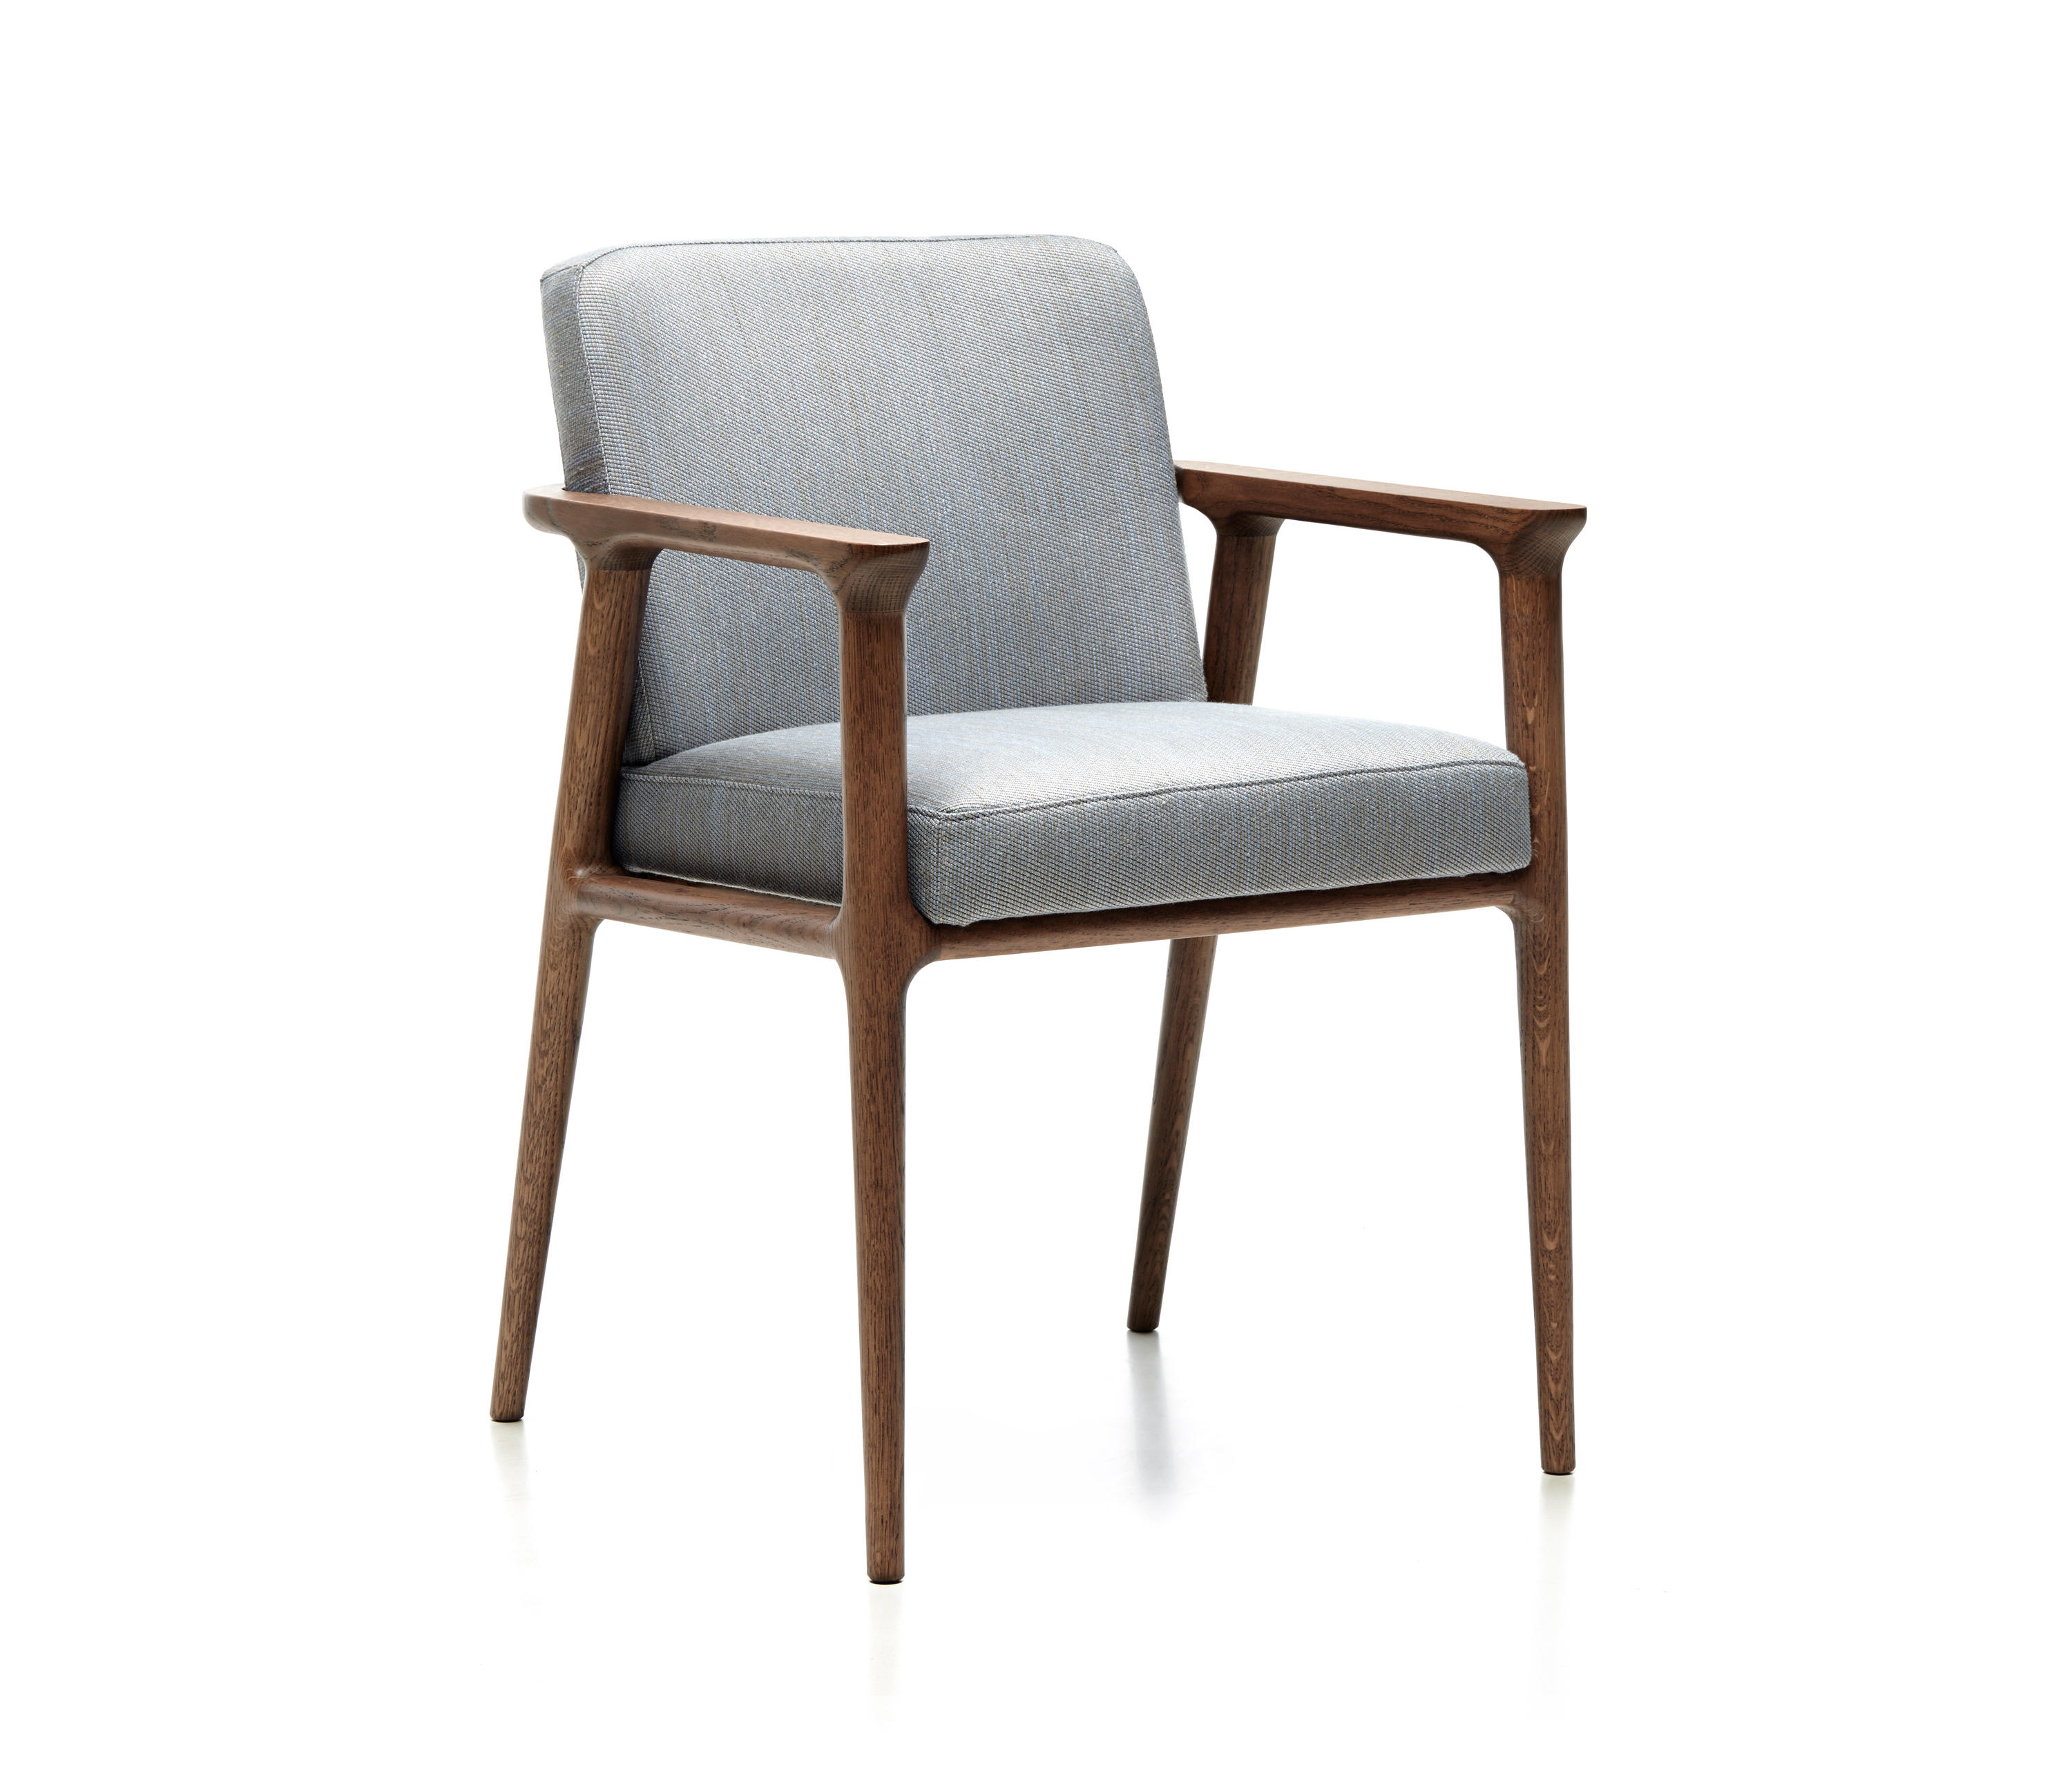 ZIO DINING CHAIR  Chairs from moooi  Architonic